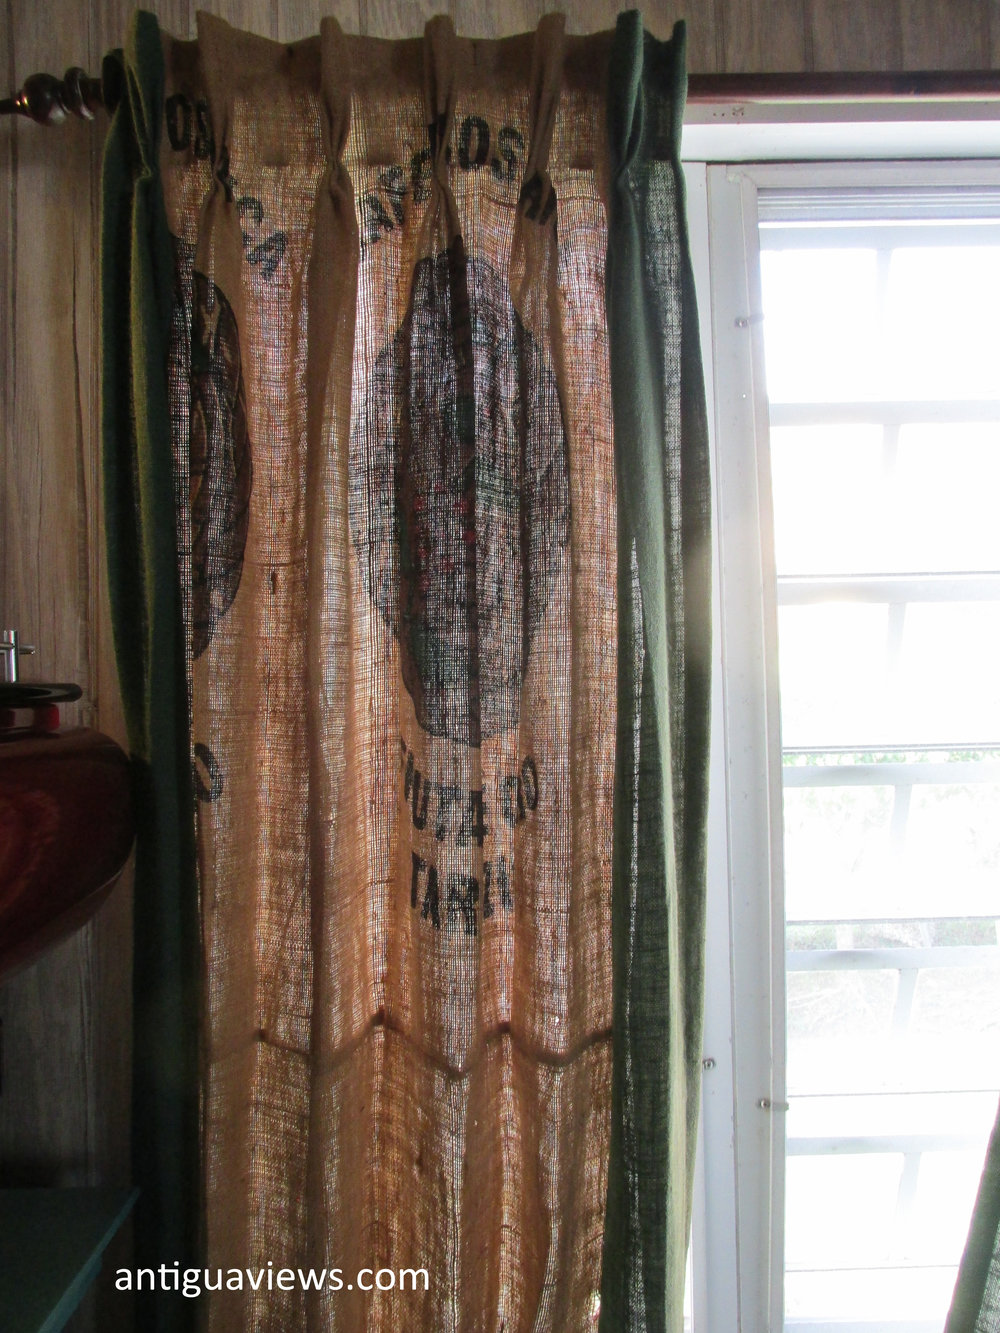 Curtains made from the coffee bean sacks at the Carib Bean coffee company in Antigua. Photo by Jennie Ritchie.